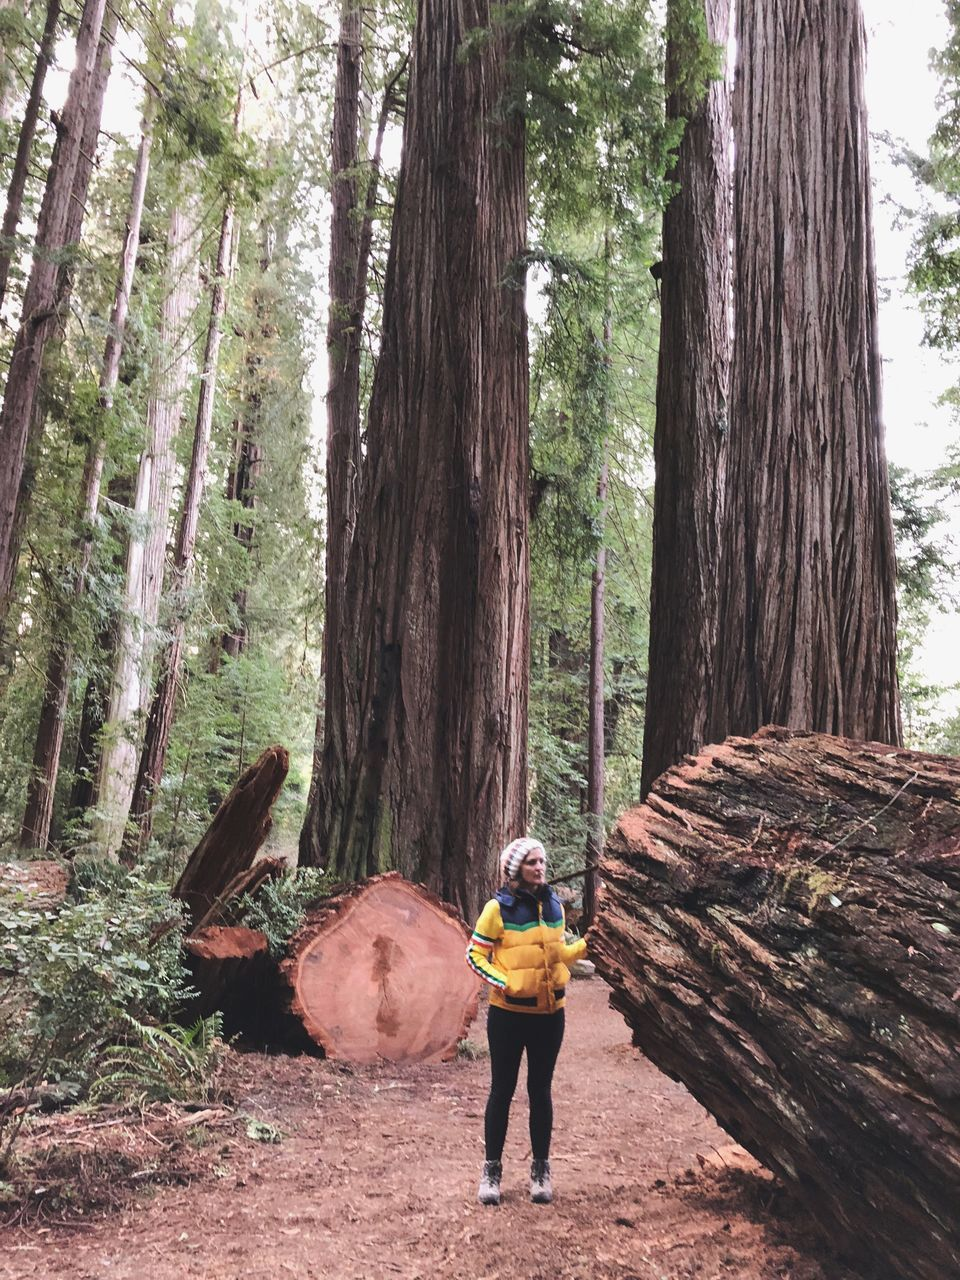 tree, tree trunk, real people, standing, one person, day, lumber industry, leisure activity, casual clothing, nature, forest, lifestyles, full length, outdoors, growth, men, beauty in nature, axe, sky